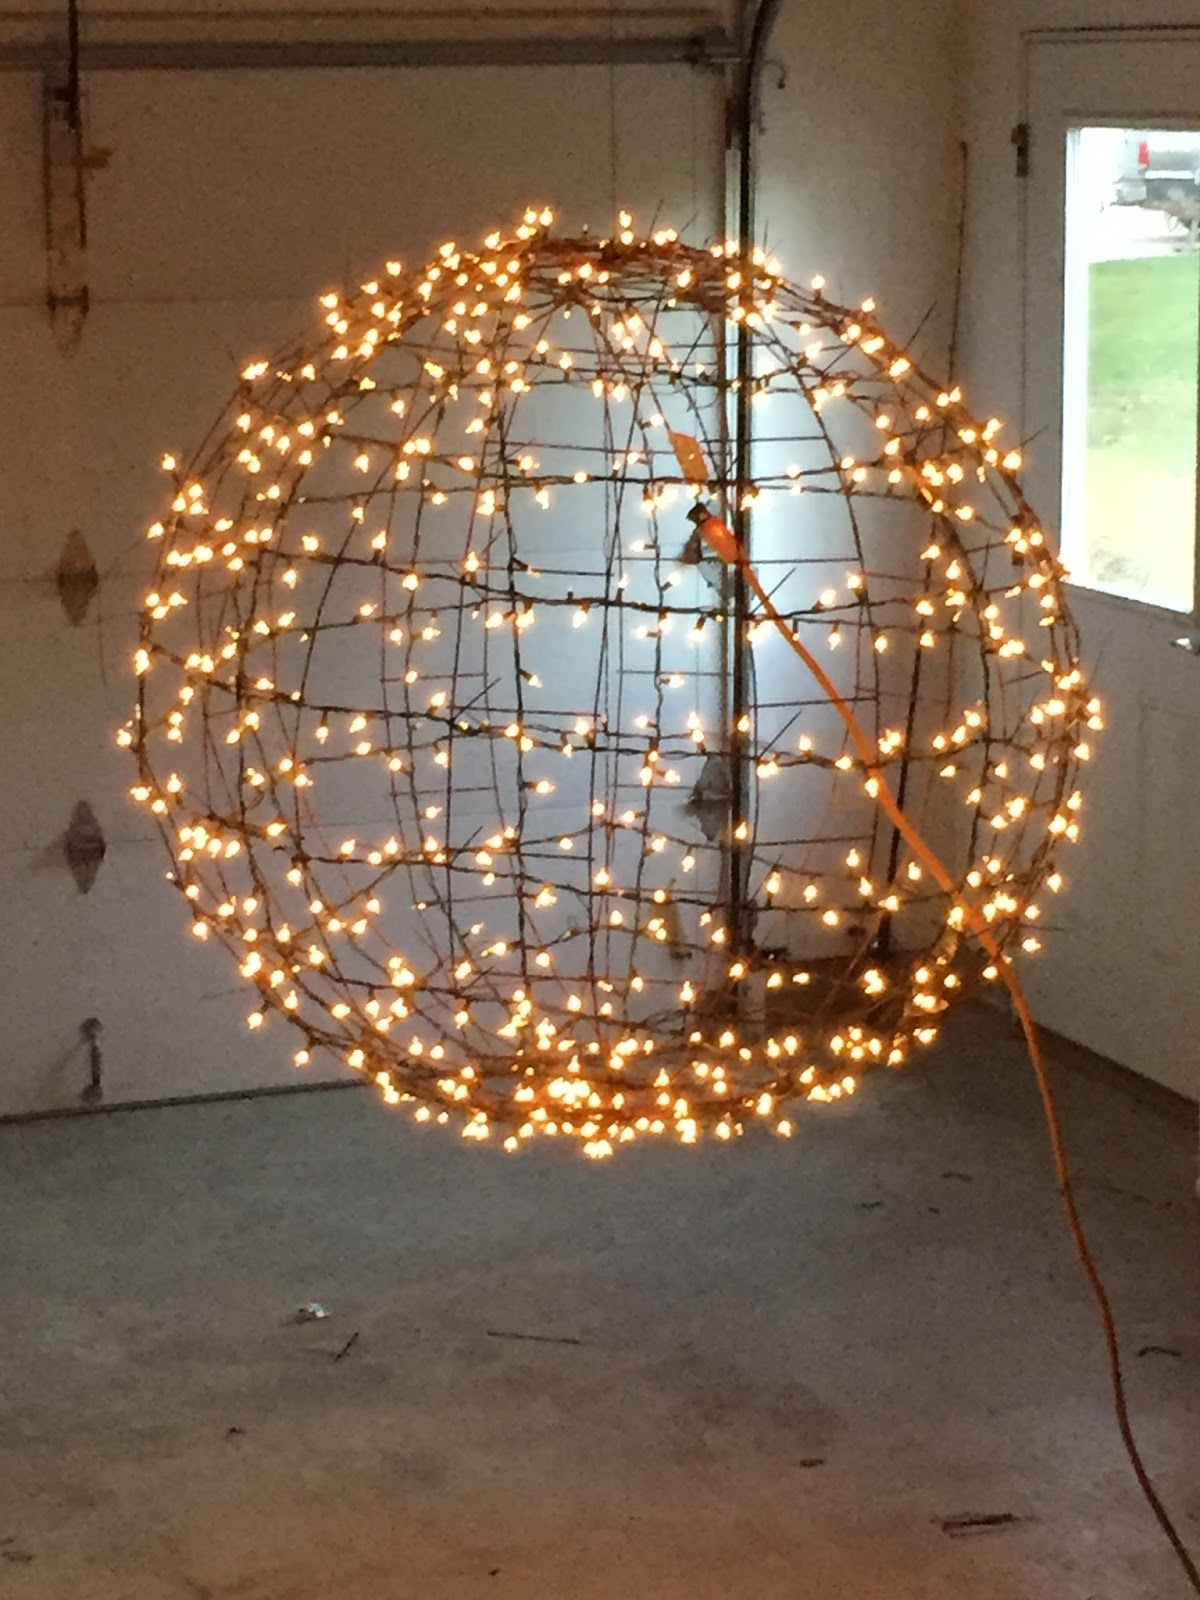 How To Make Your Own Hanging Light Orb